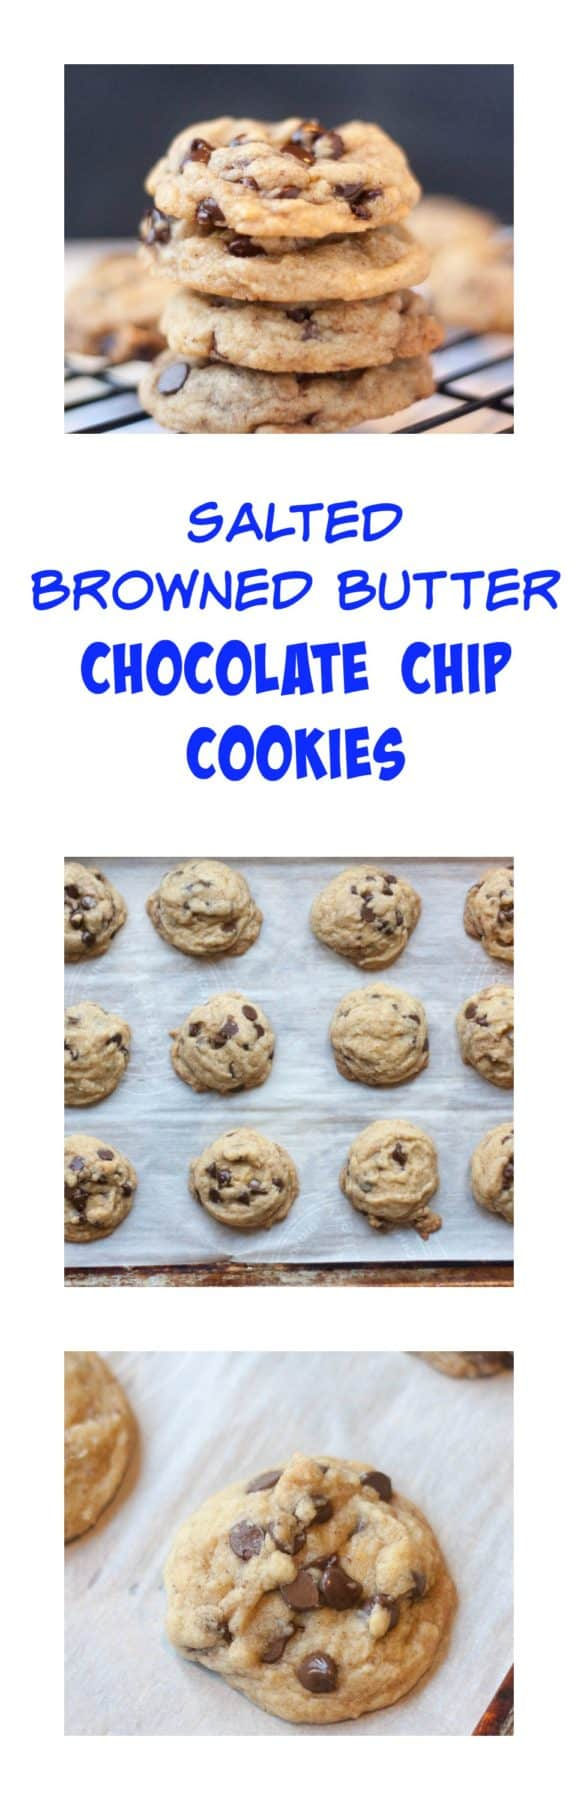 Salted Browned Butter Chocolate Chip Cookies - Boston Girl Bakes